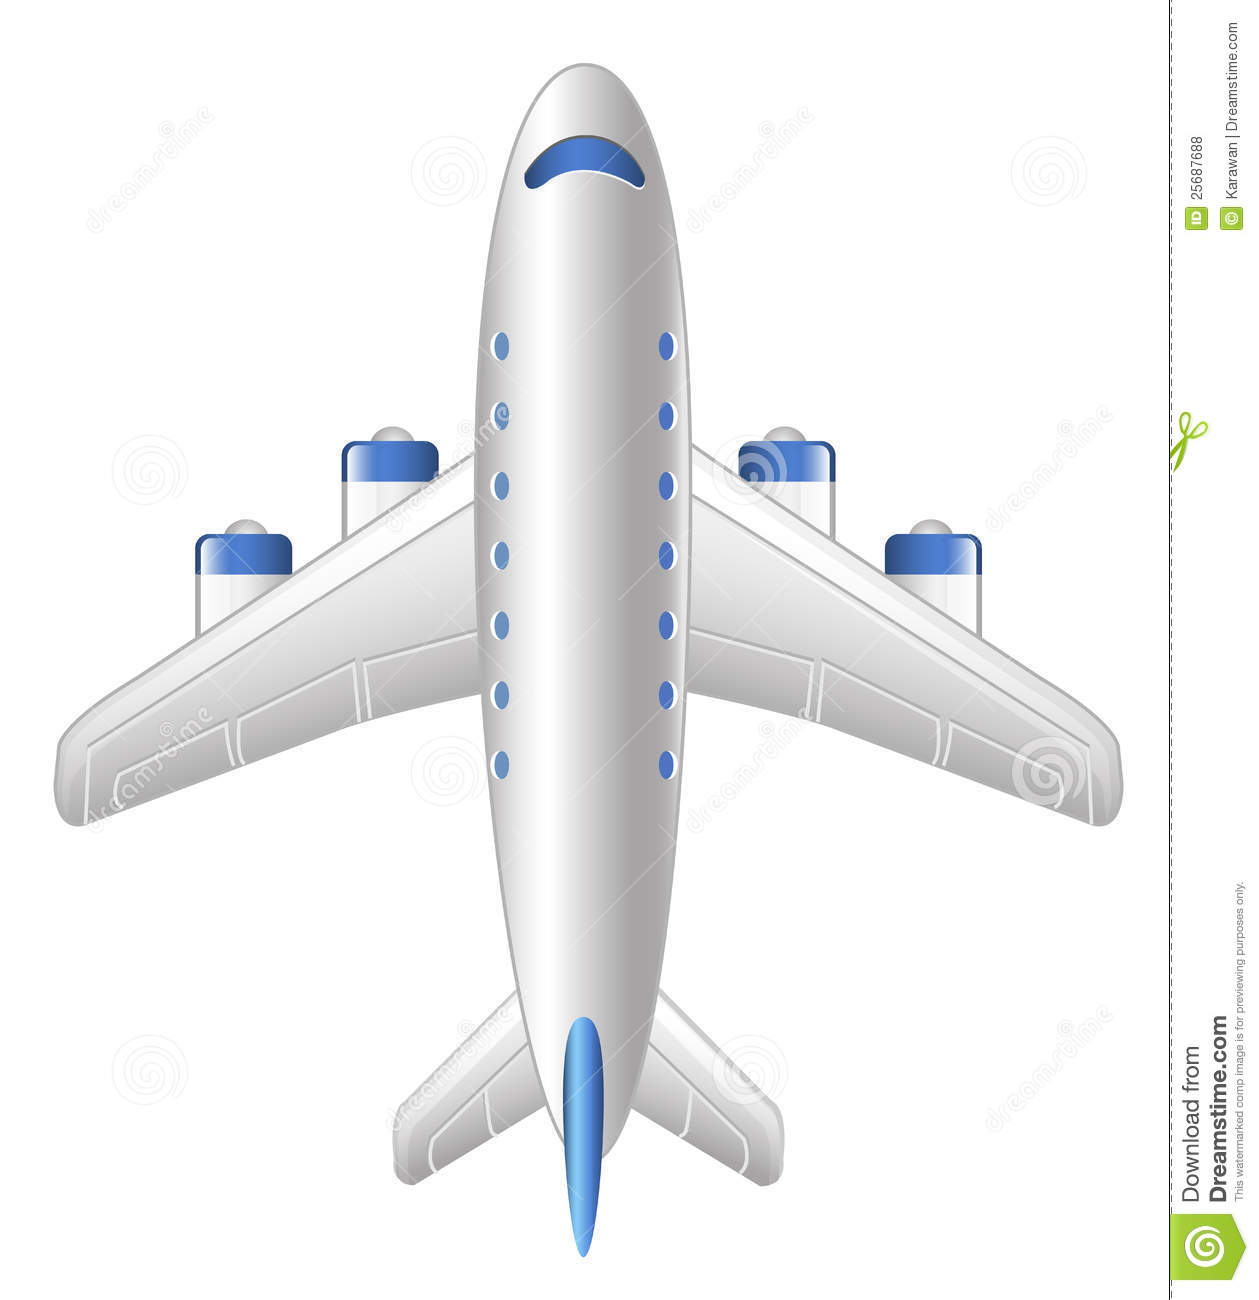 toy jet airplane with Royalty Free Stock Photos Plane Icon Vector Image25687688 on Photo php additionally Mixed Squirrel Fake UnkGw465qKwqA further Watch likewise Military as well Royalty Free Stock Images Golden Plane Image2158329.